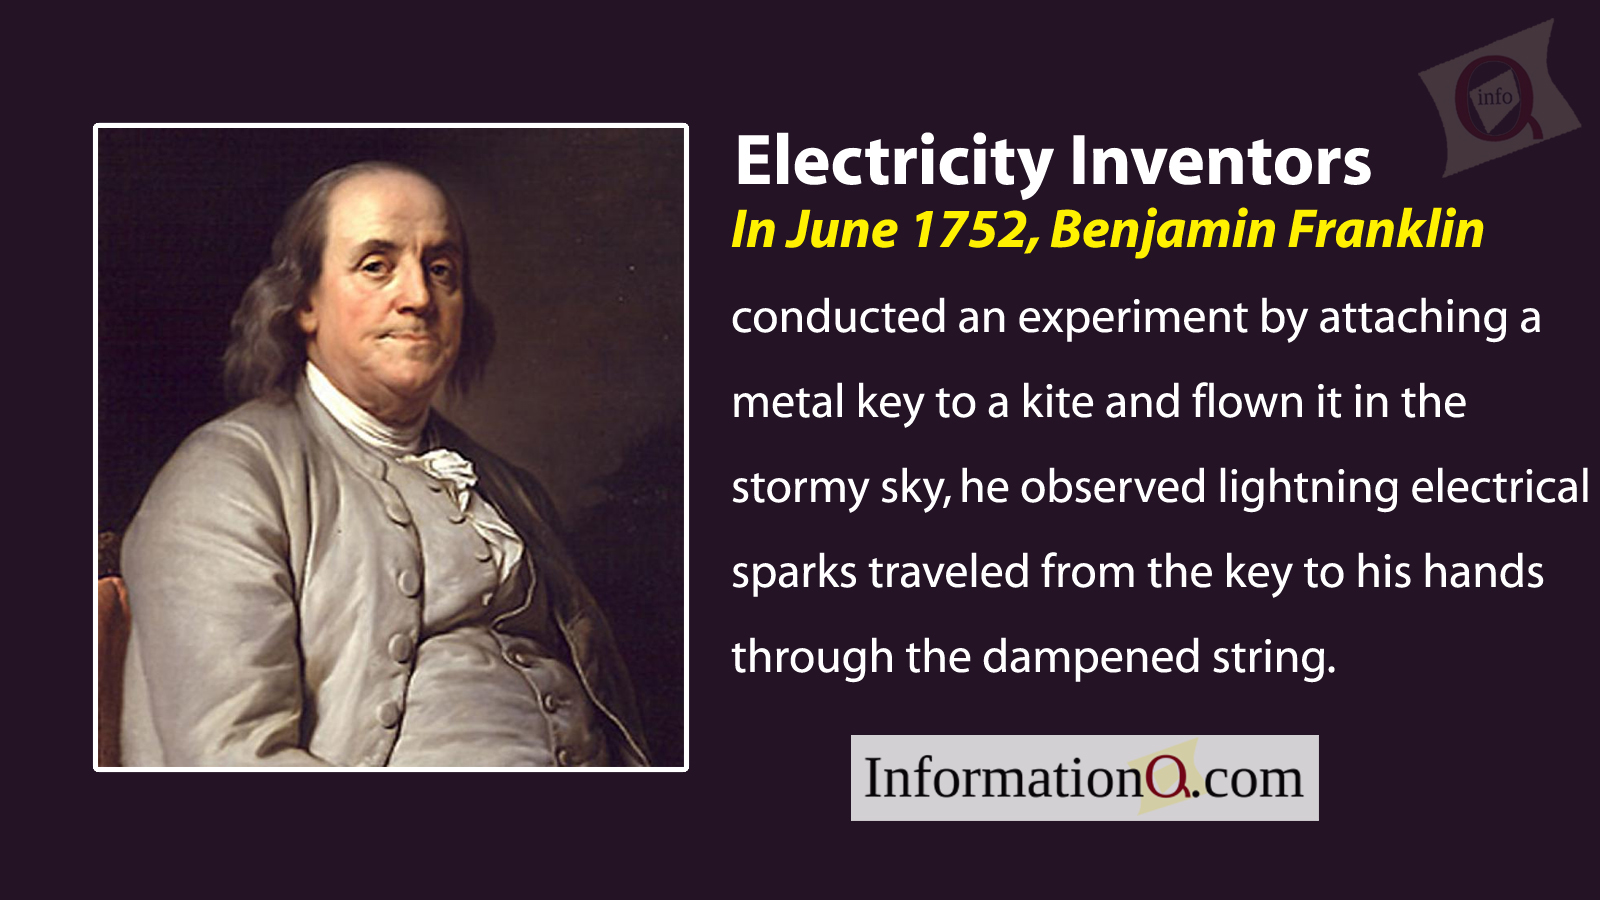 In June 1752, Benjamin Franklin conducted an experiment by attaching a metal key to a kite and flown it in the stormy sky